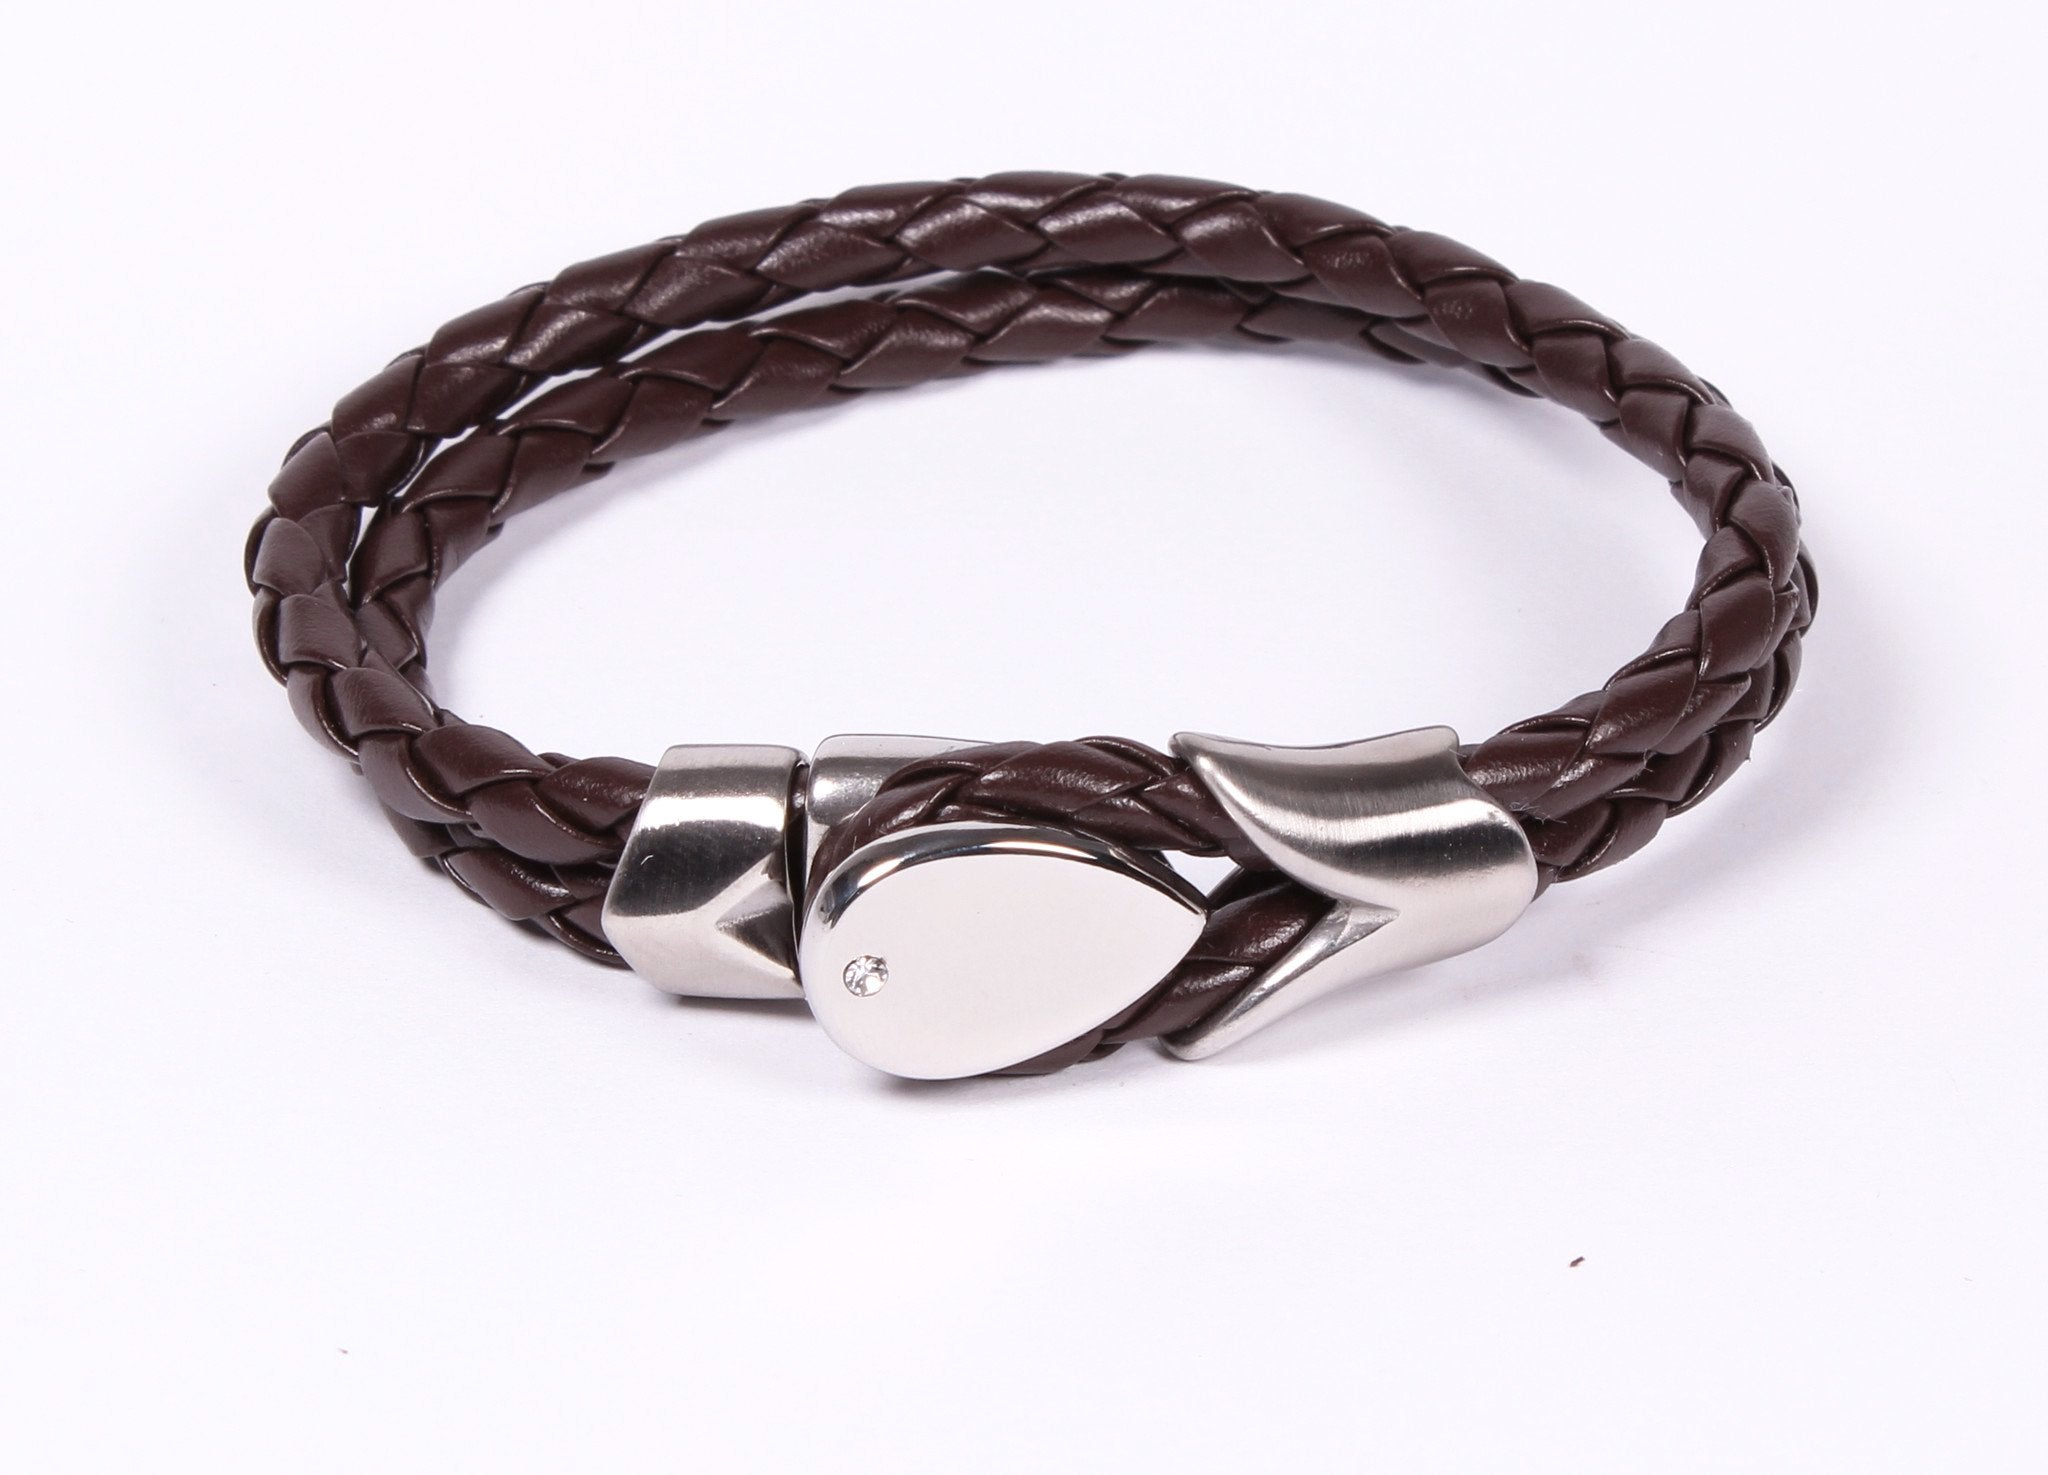 Espresso Brown Leather and Stainless Steel Bracelet Modern Look